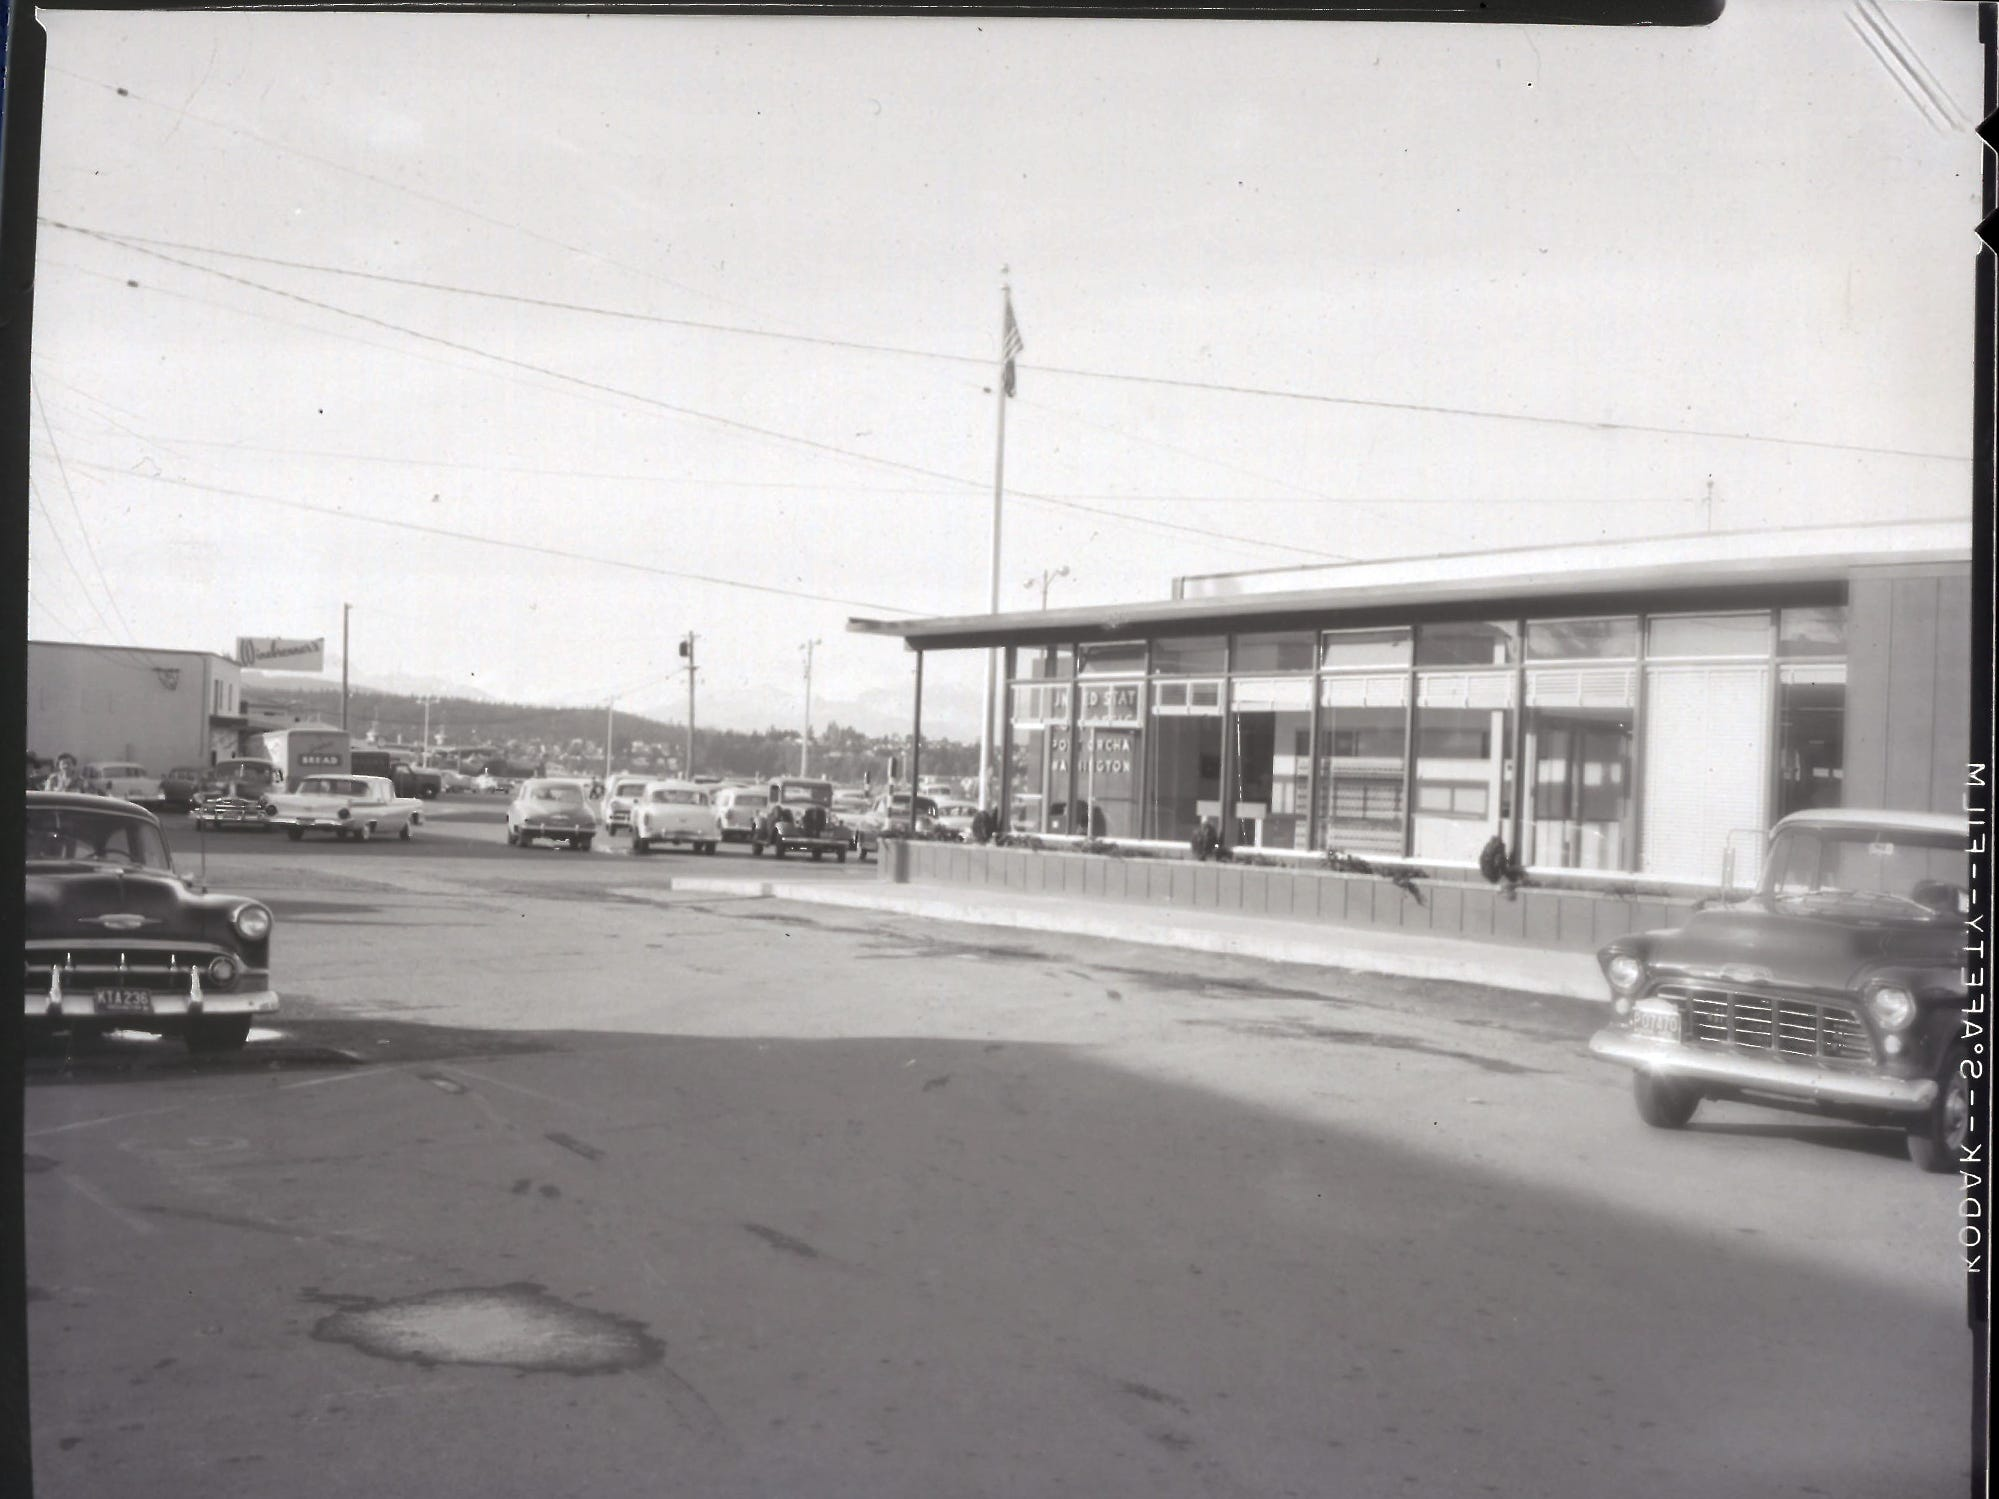 11/12/60